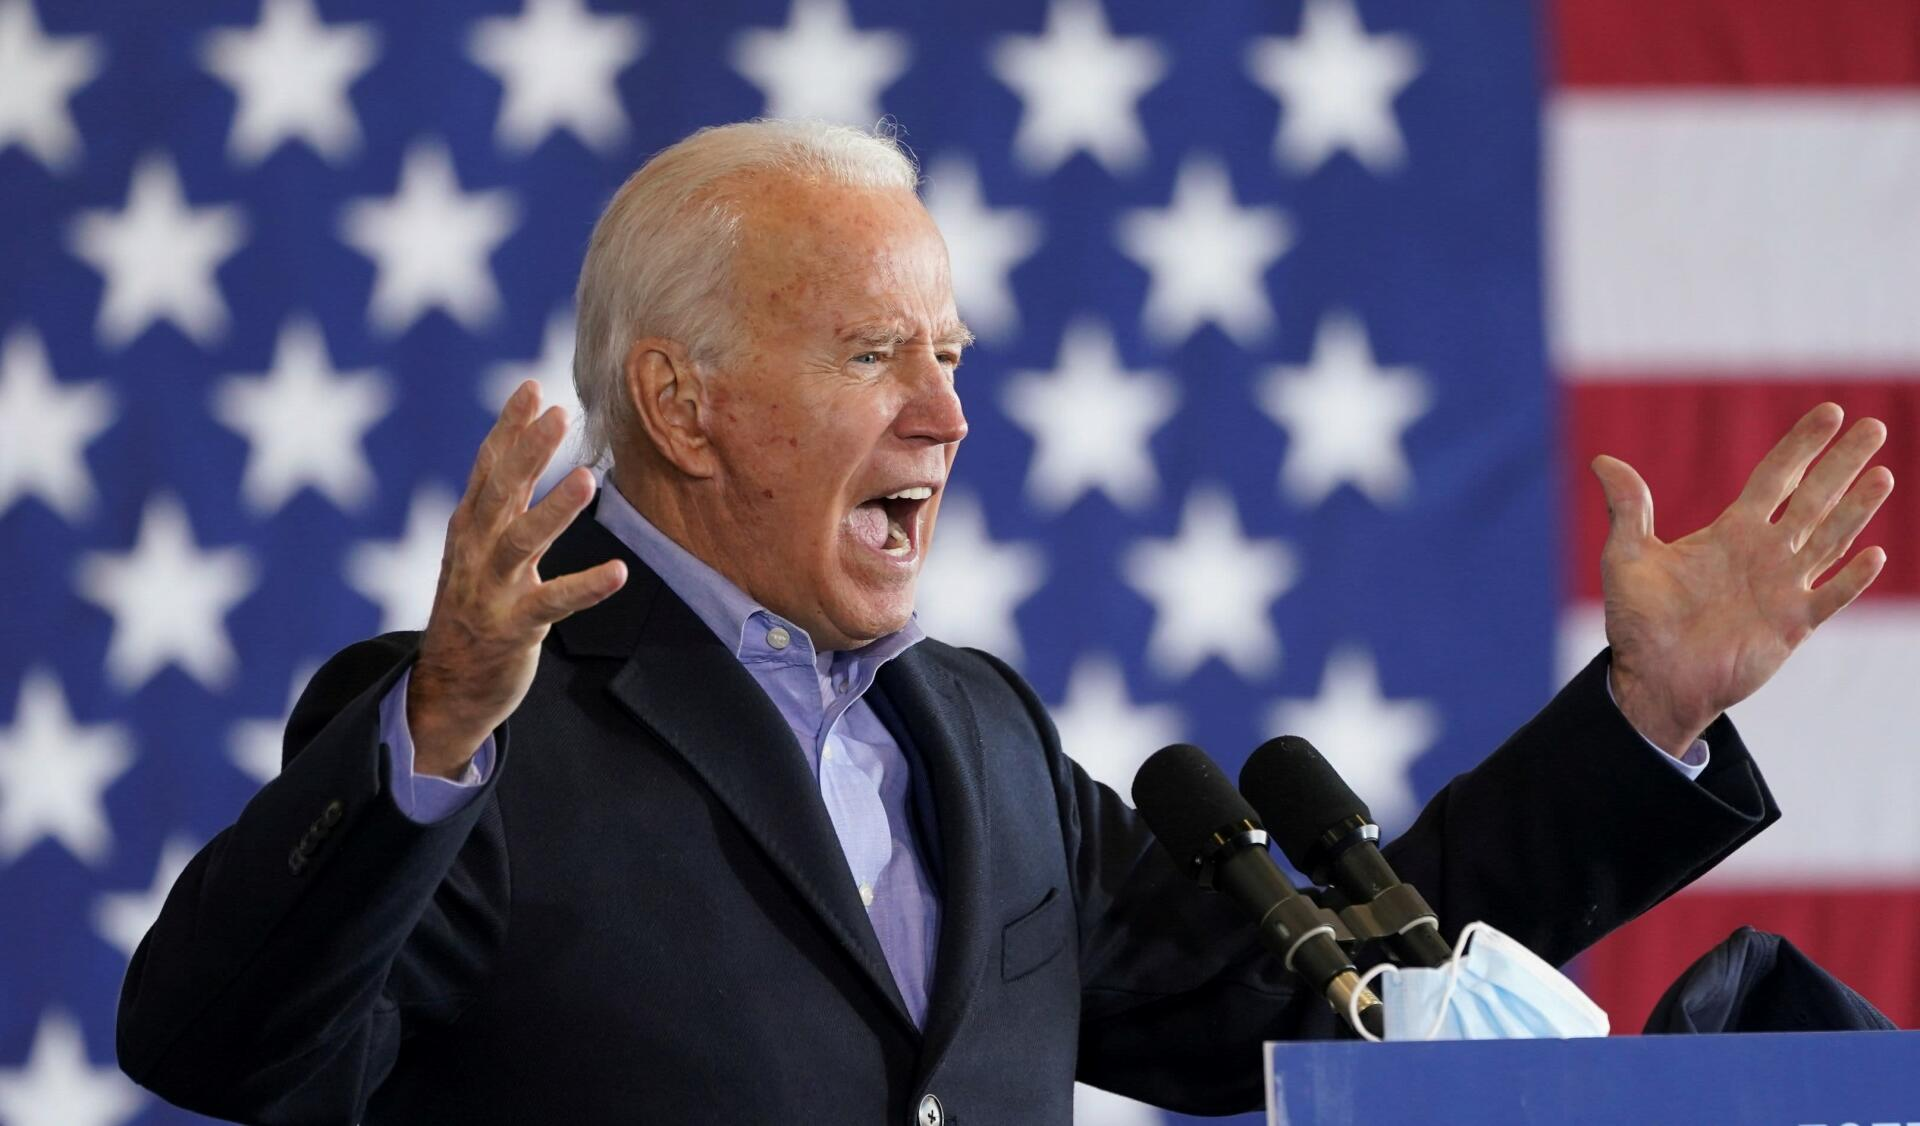 The economic crisis in the US is deepening - Biden